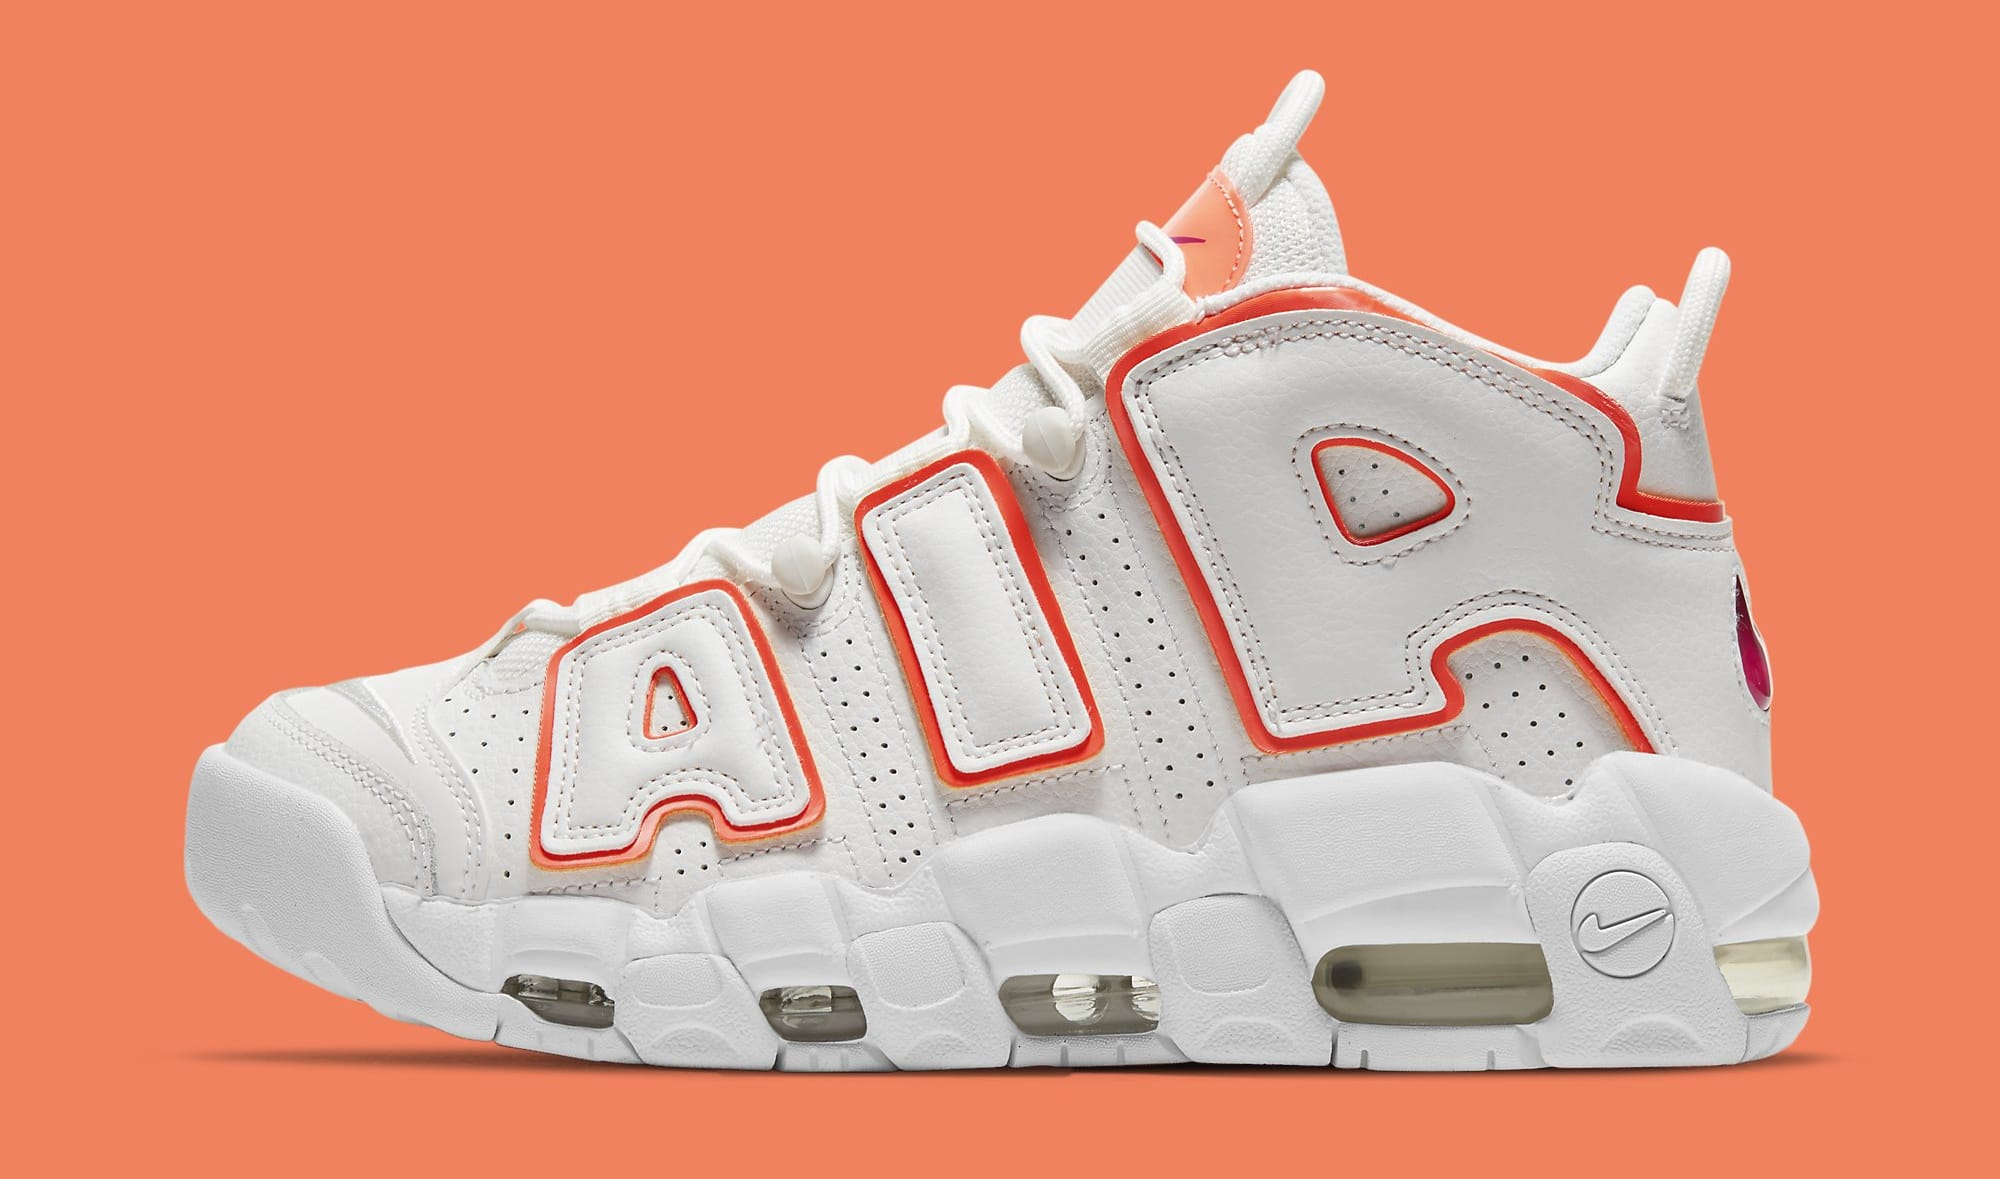 Nike Air More Uptempo 'Sunset' DH4968-100 Lateral